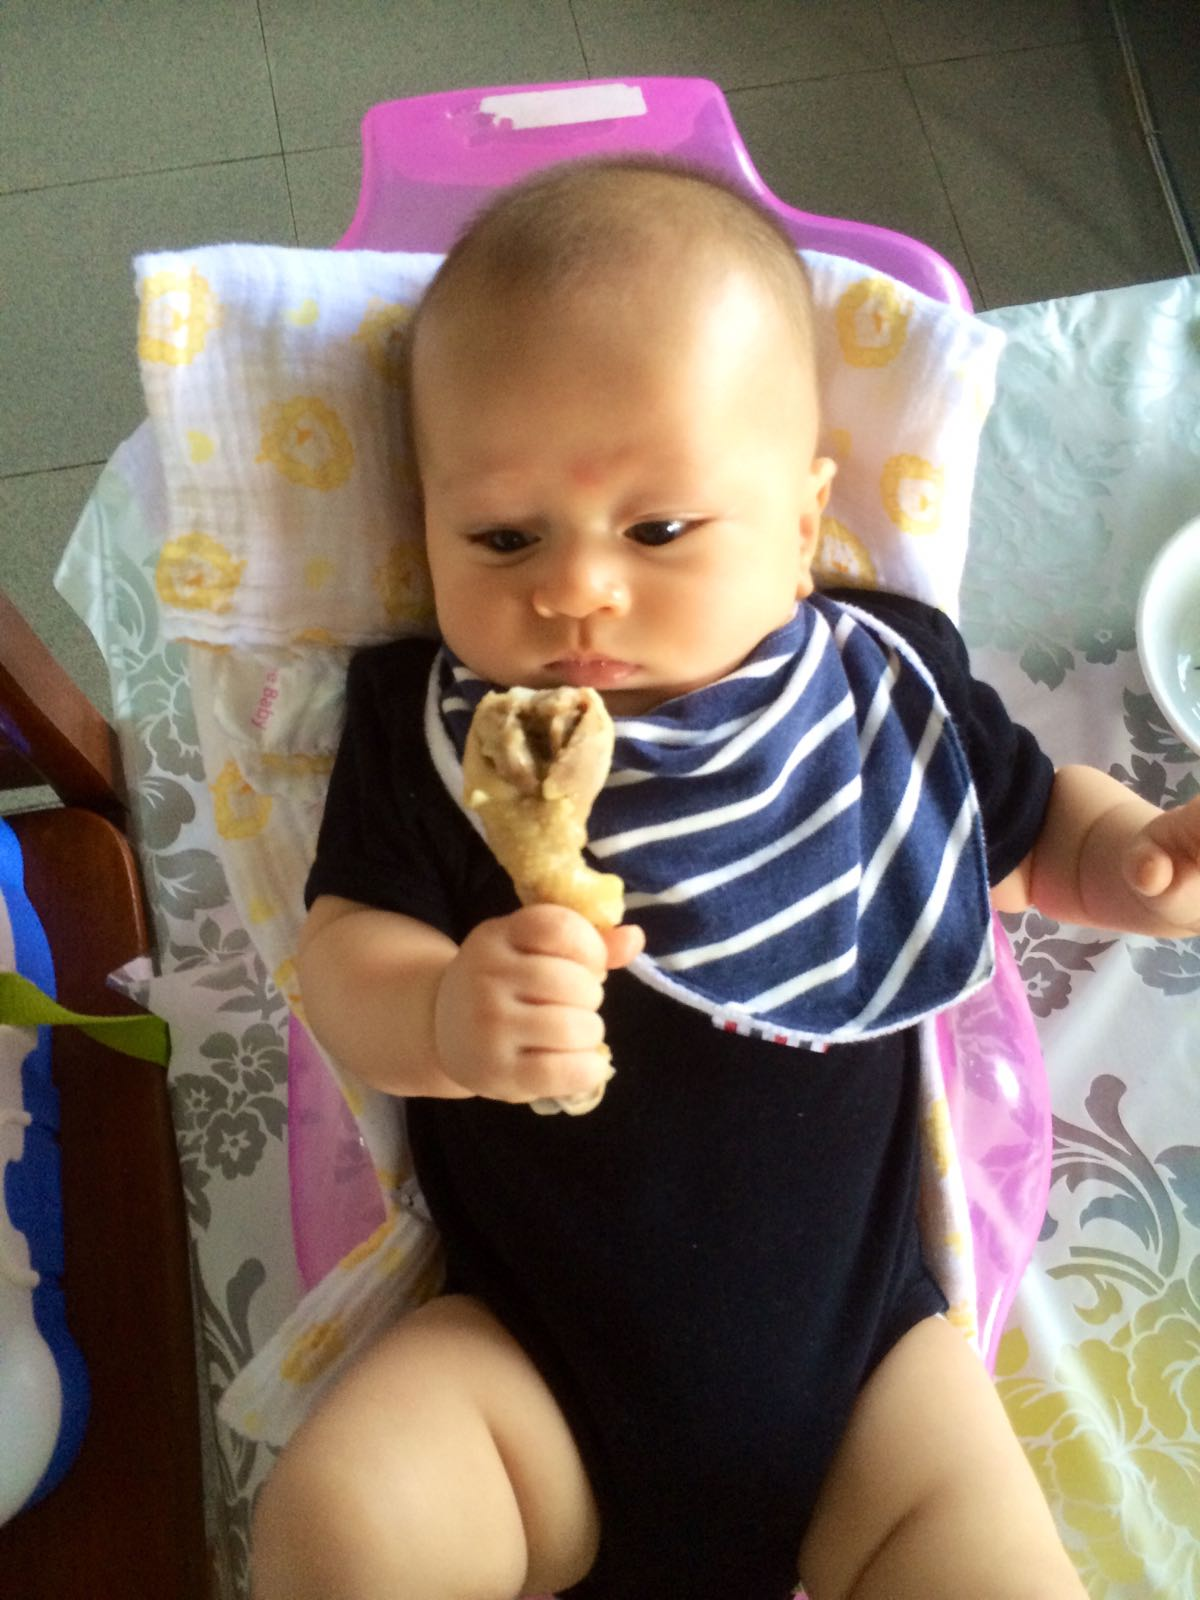 baby-ninja-skeptical-when-holding-chicken-drumstick